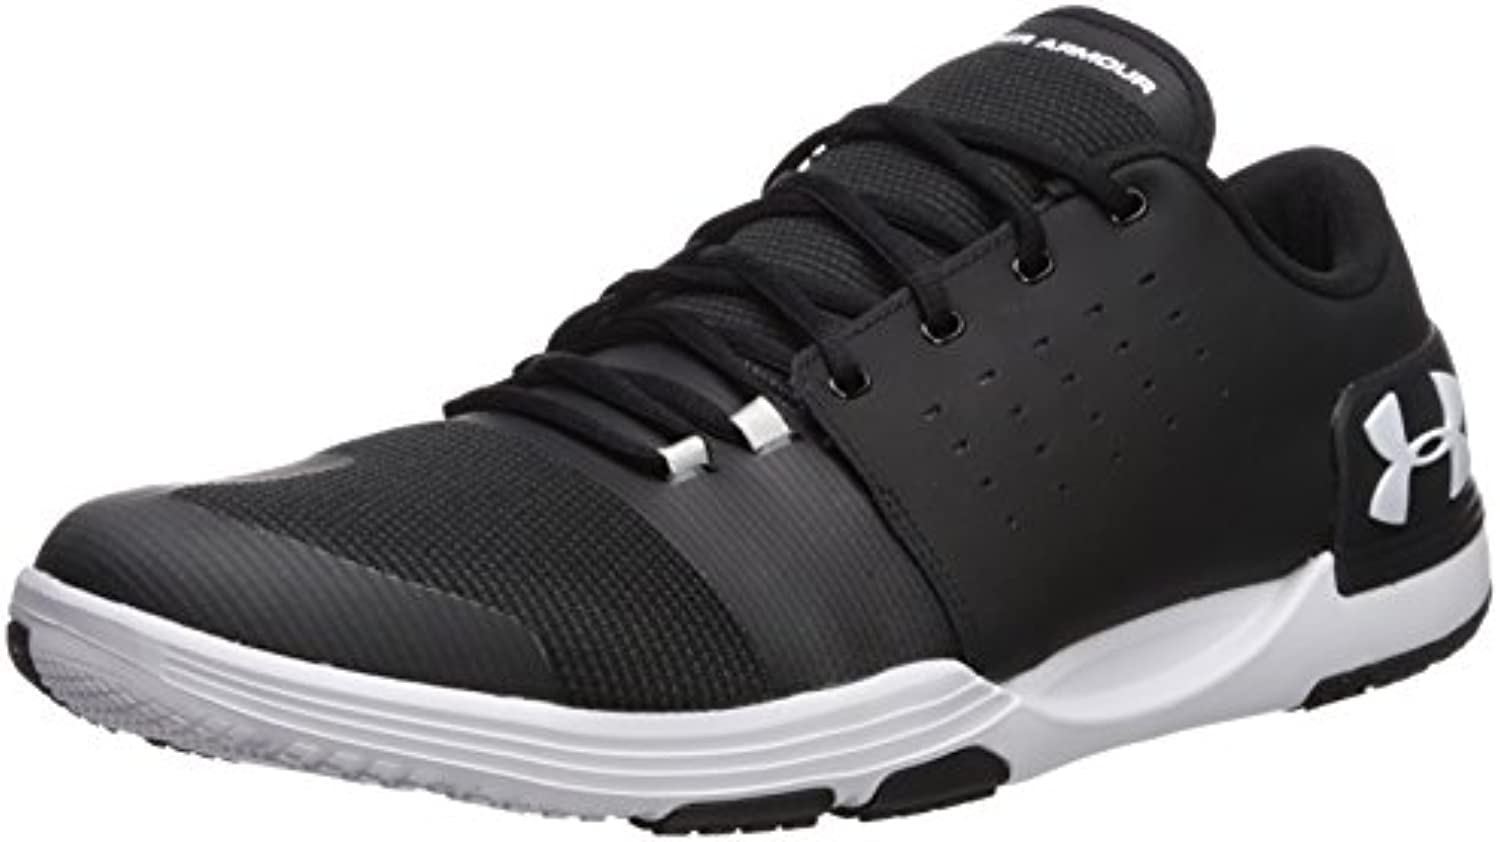 Under Armour Herren UA Limitless Tr 3.0 1295776 001 Hallenschuhe